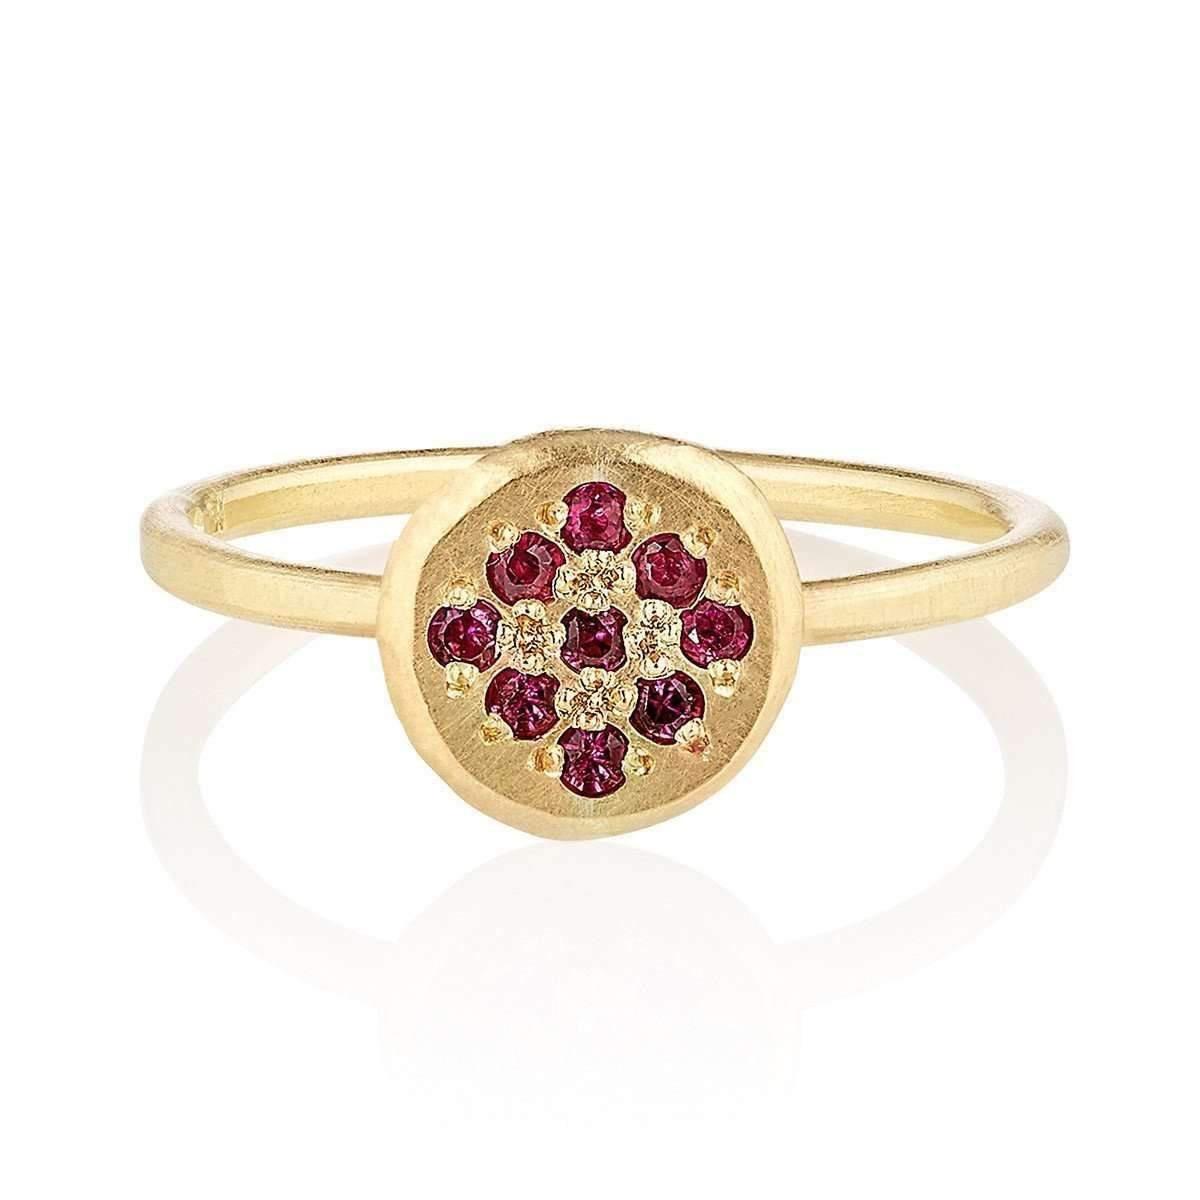 Shakti Ellenwood 18kt Fairtrade Cherish Ruby Ring - UK N - US 6 1/2 - EU 54 cc2E9ivYEm